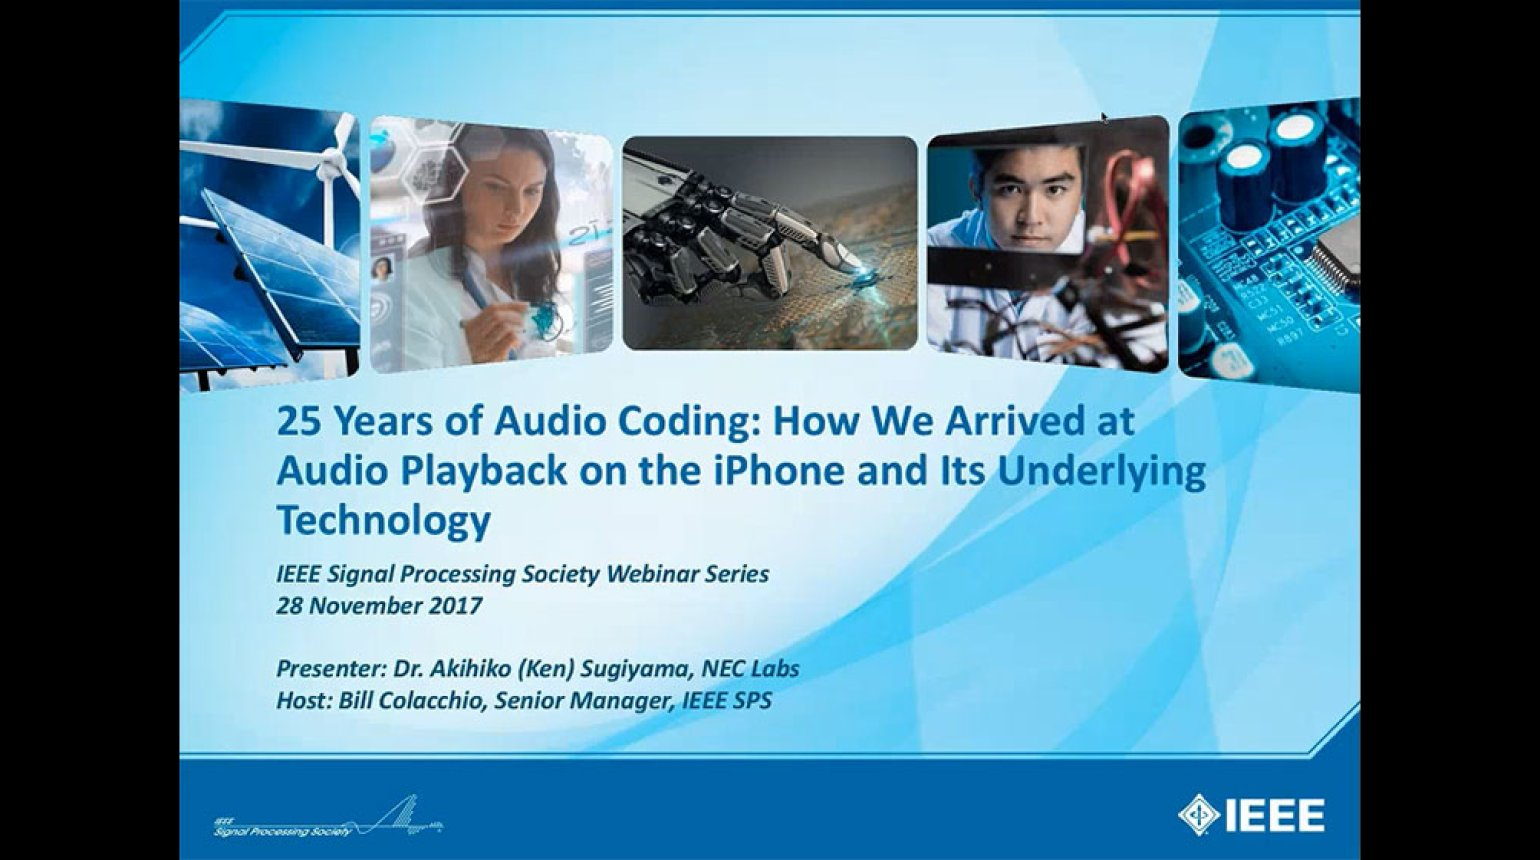 IEEE SPS Webinar: Dr. Akihiko (Ken) Sugiyama - 25 Years of Audio Coding: How we Arrived at Audio Playback on the iPhone and its Underlying Technology